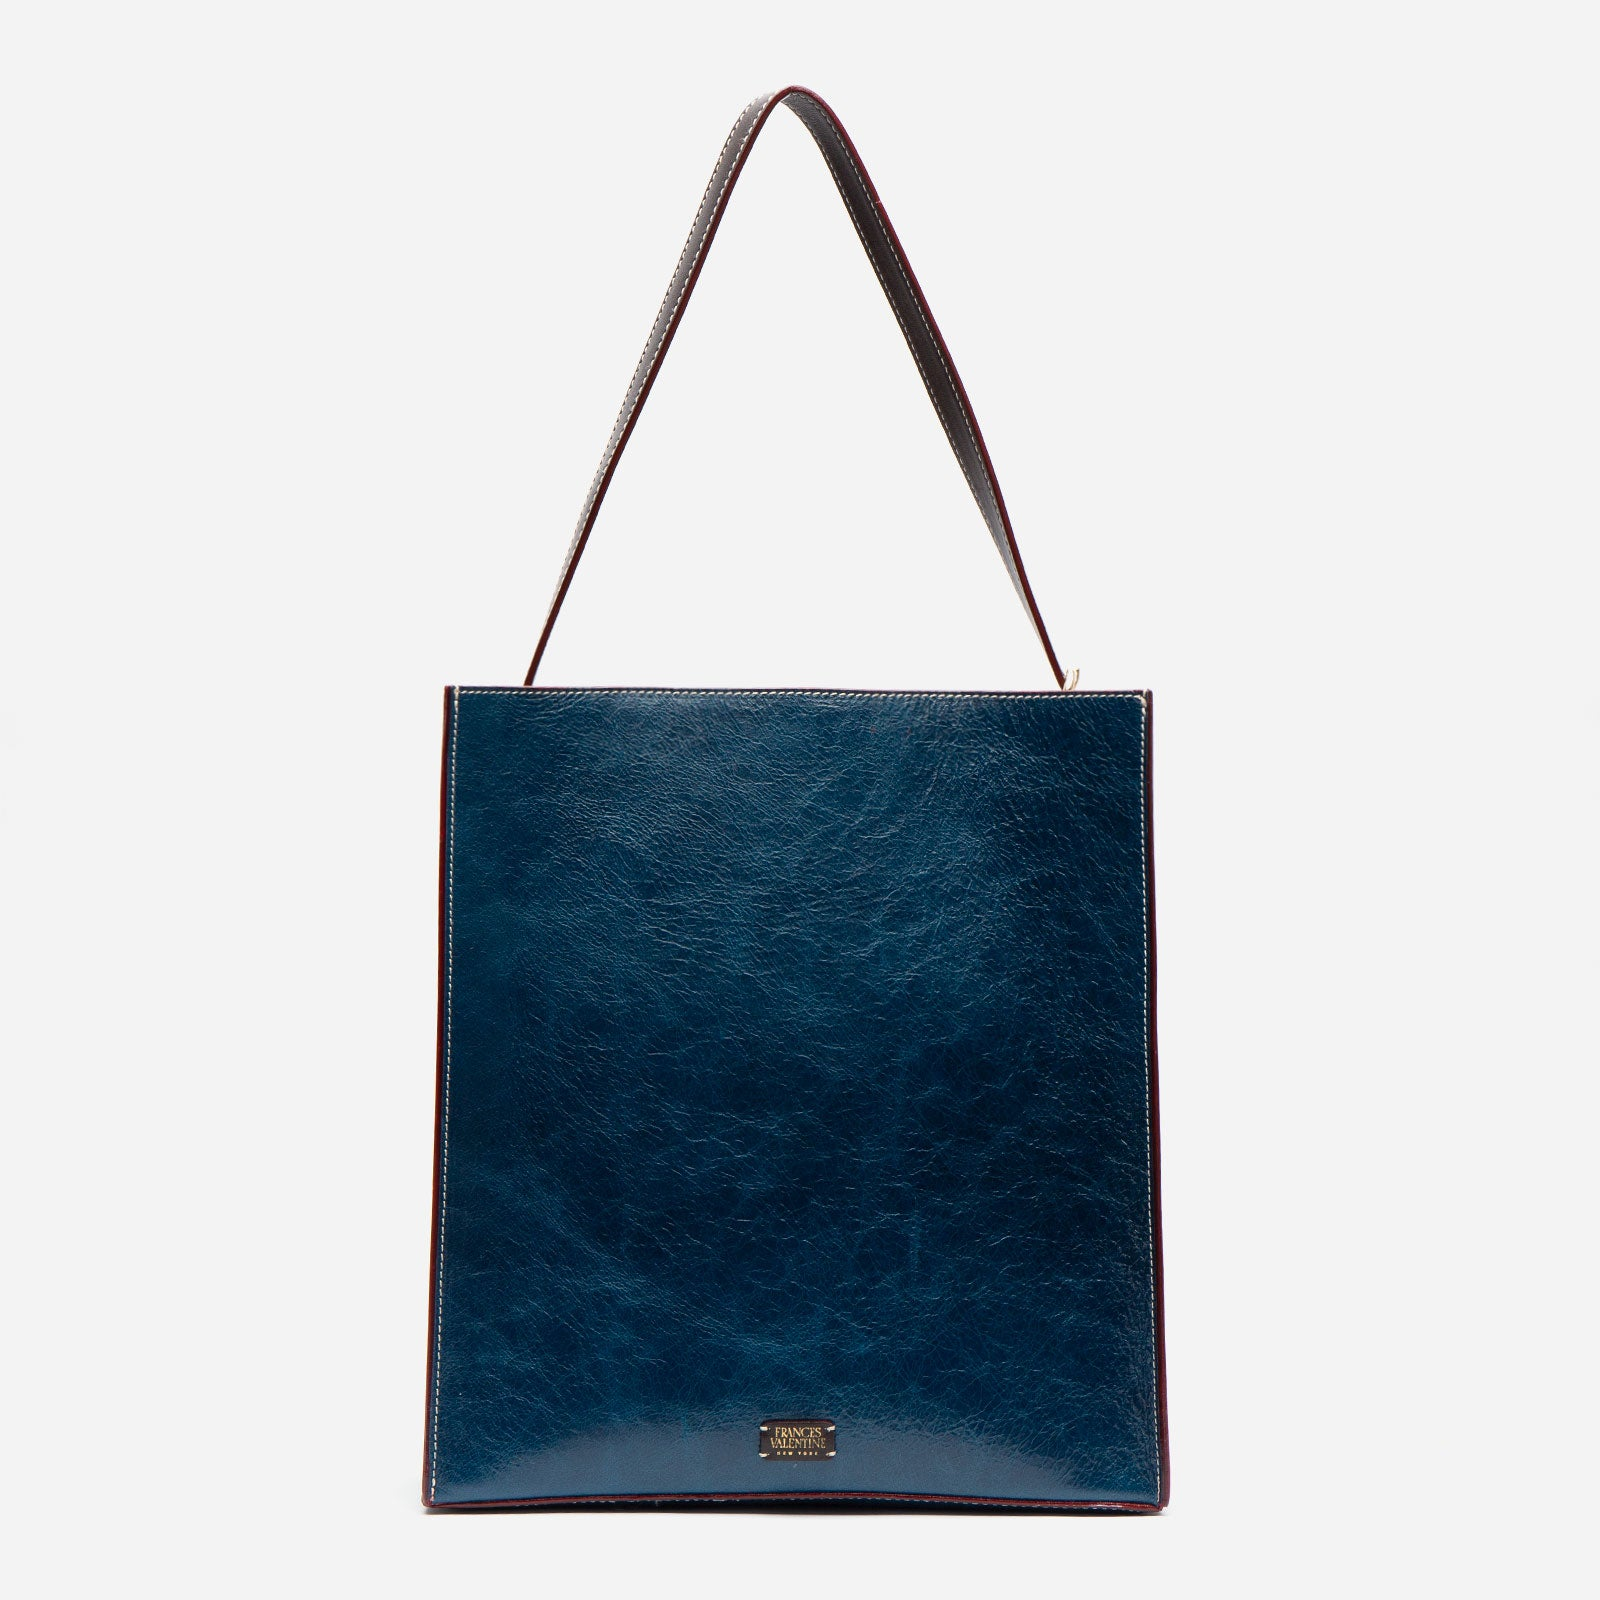 Finn Naplak Leather Navy Oyster - Frances Valentine